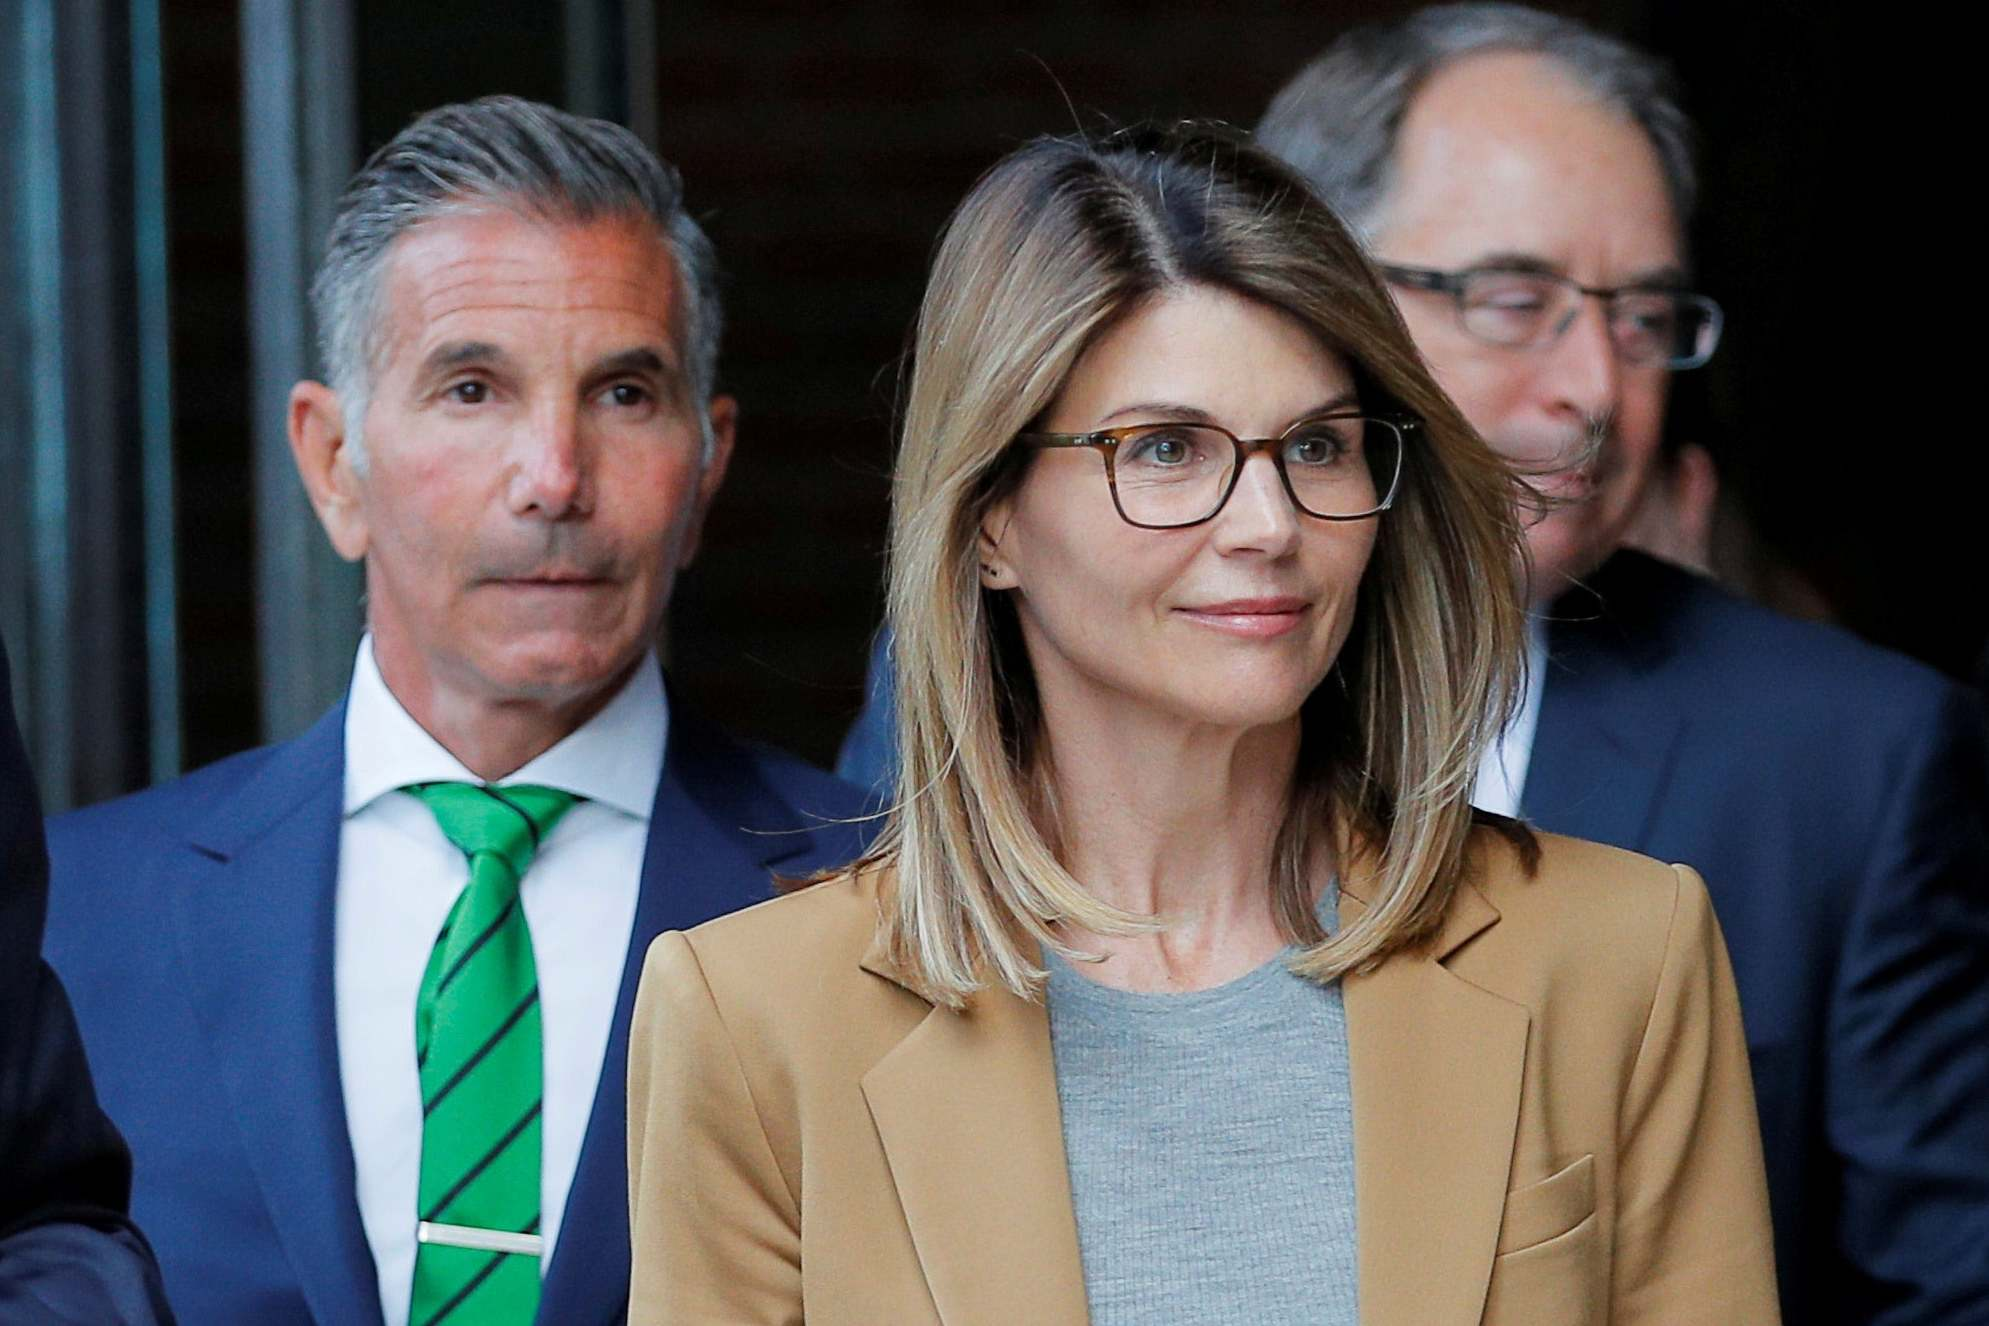 Lori Loughlin launched after serving jail timeframe for university bribes rip-off